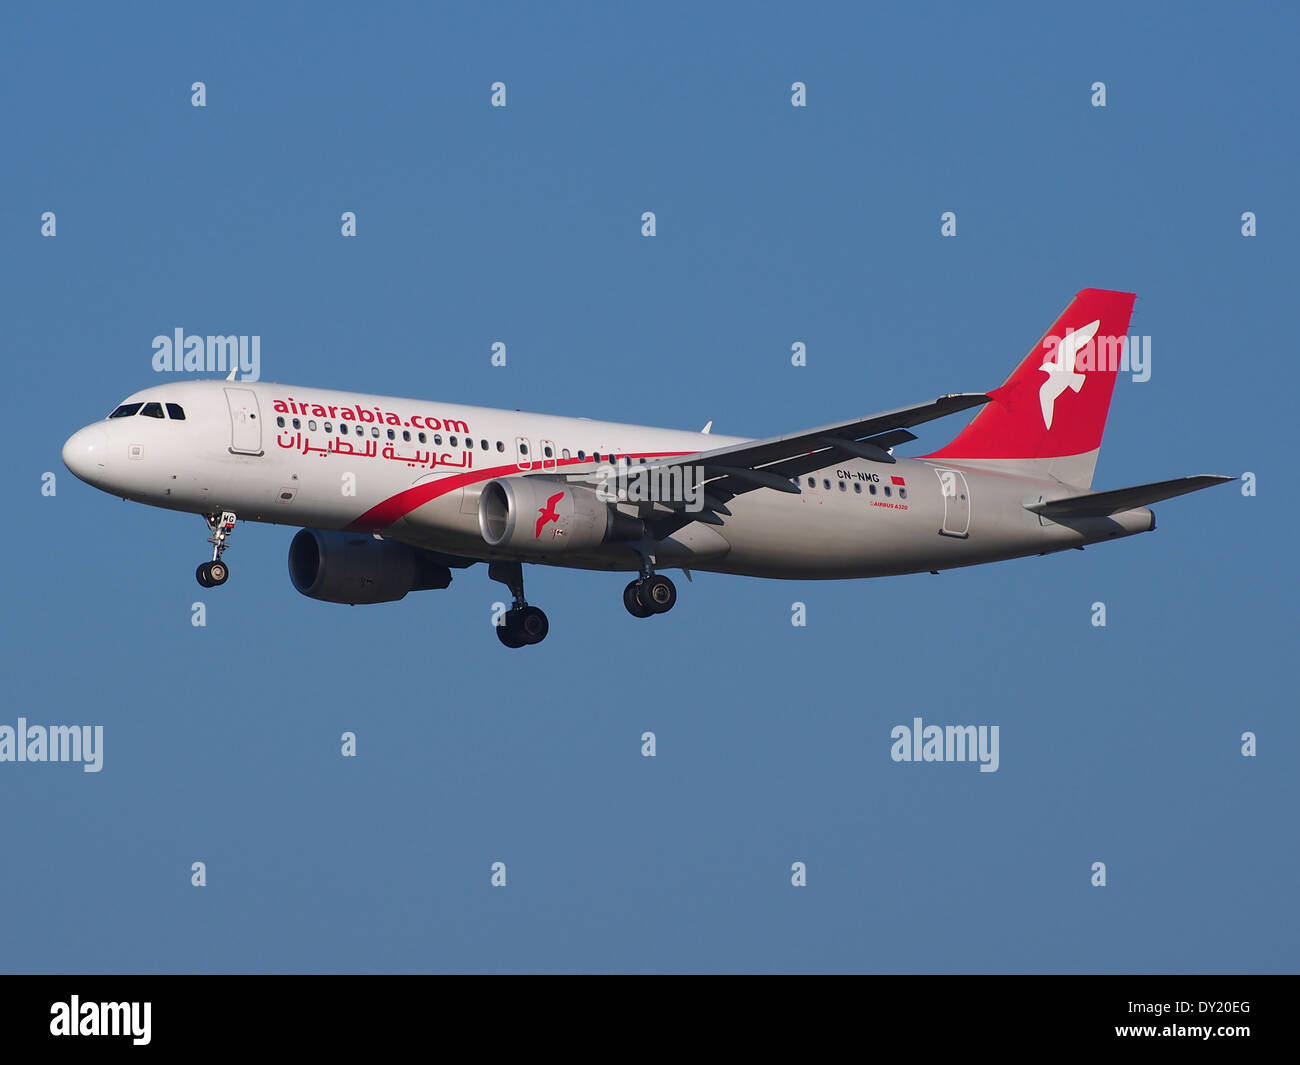 CN-NMG Air Arabia Maroc Airbus A320-214, landing at Schiphol (AMS - EHAM), Netherlands, pic2 - Stock Image